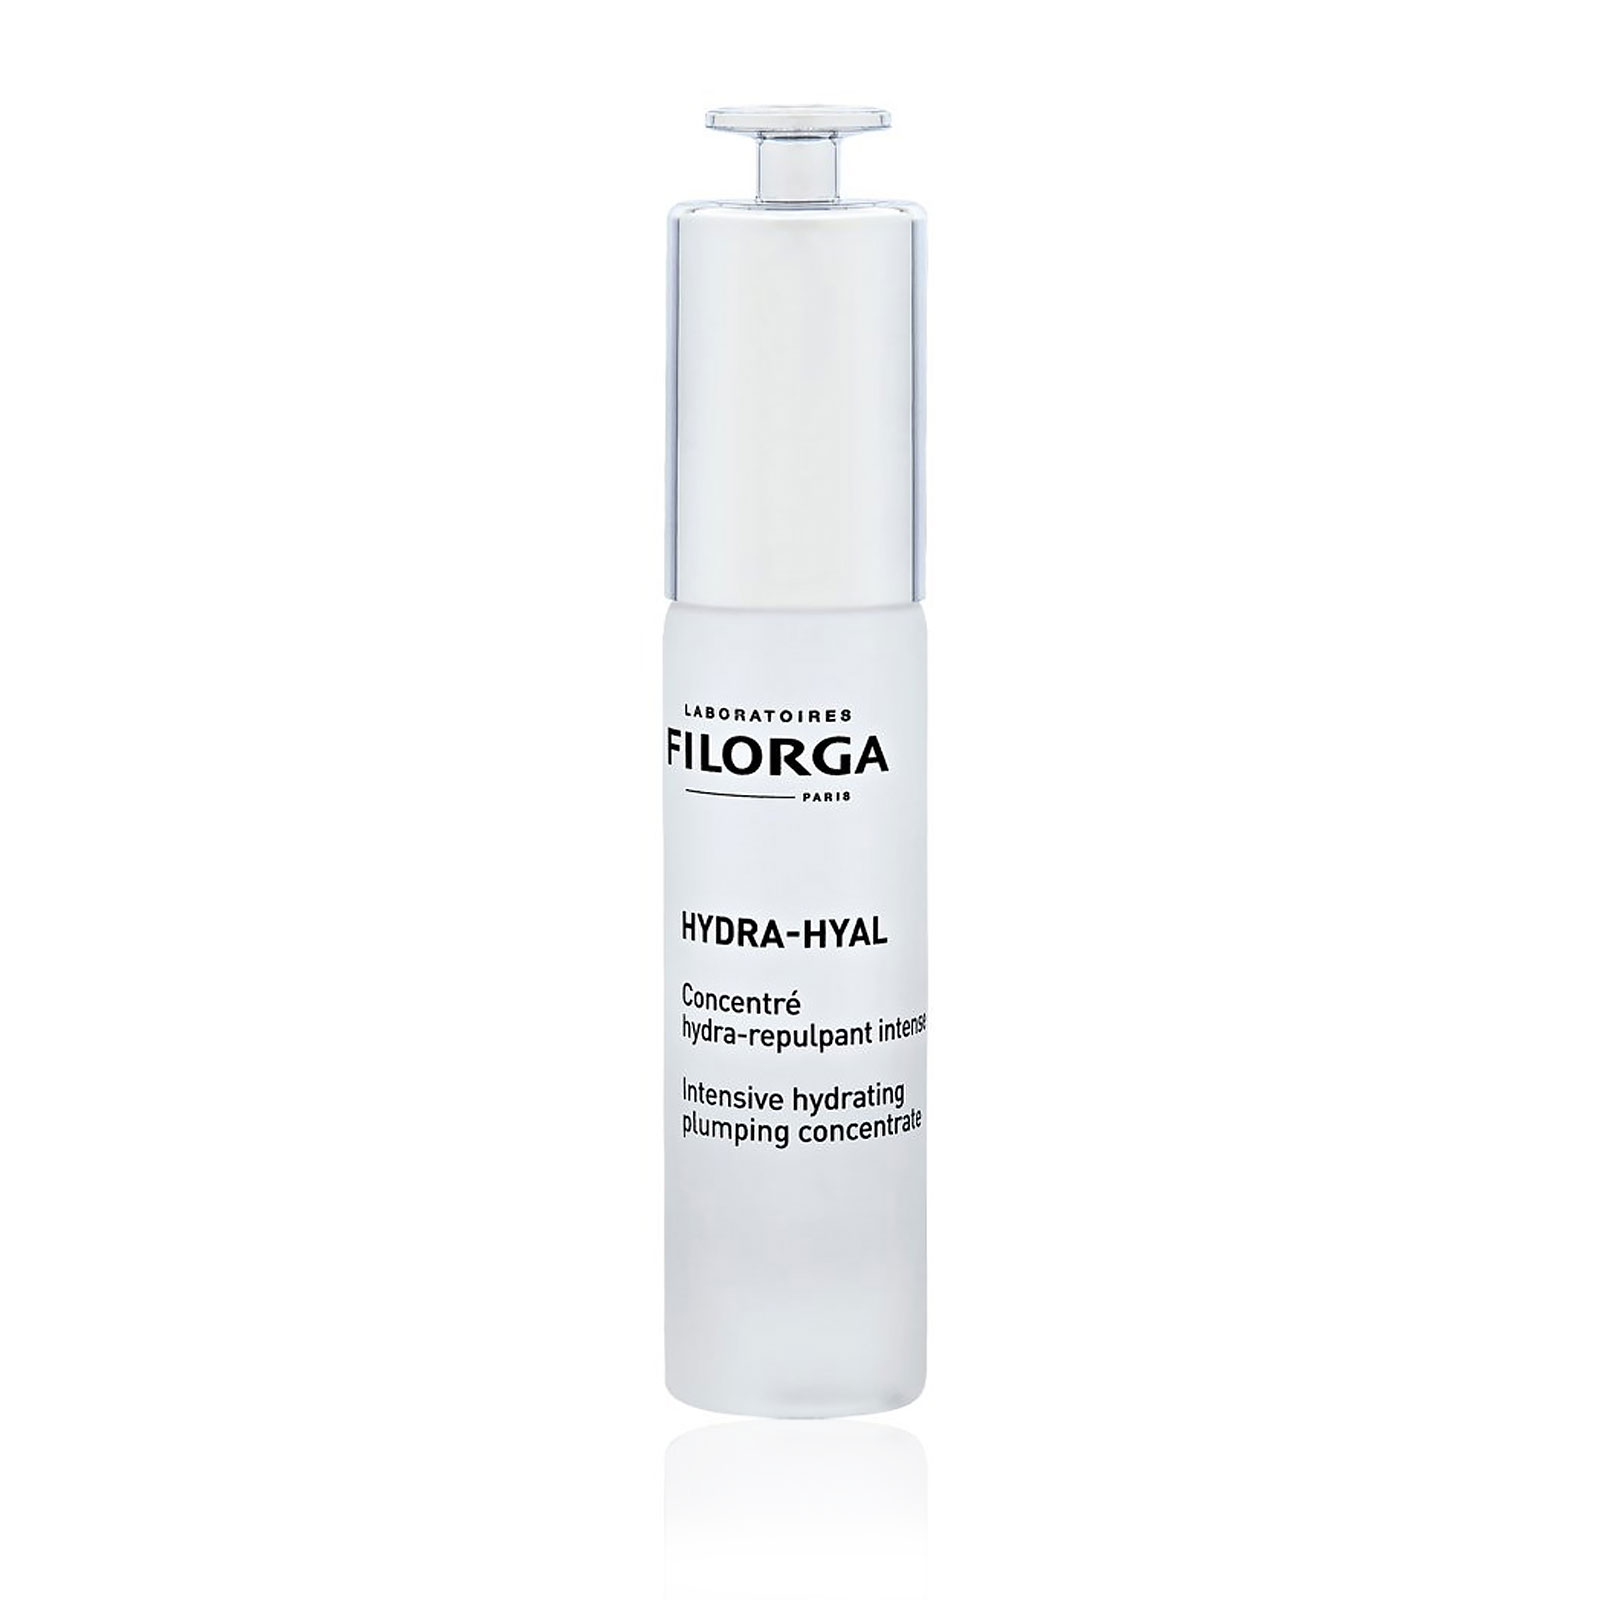 Hydra-Hyal Intensive Hydrating Plumping Concentrate